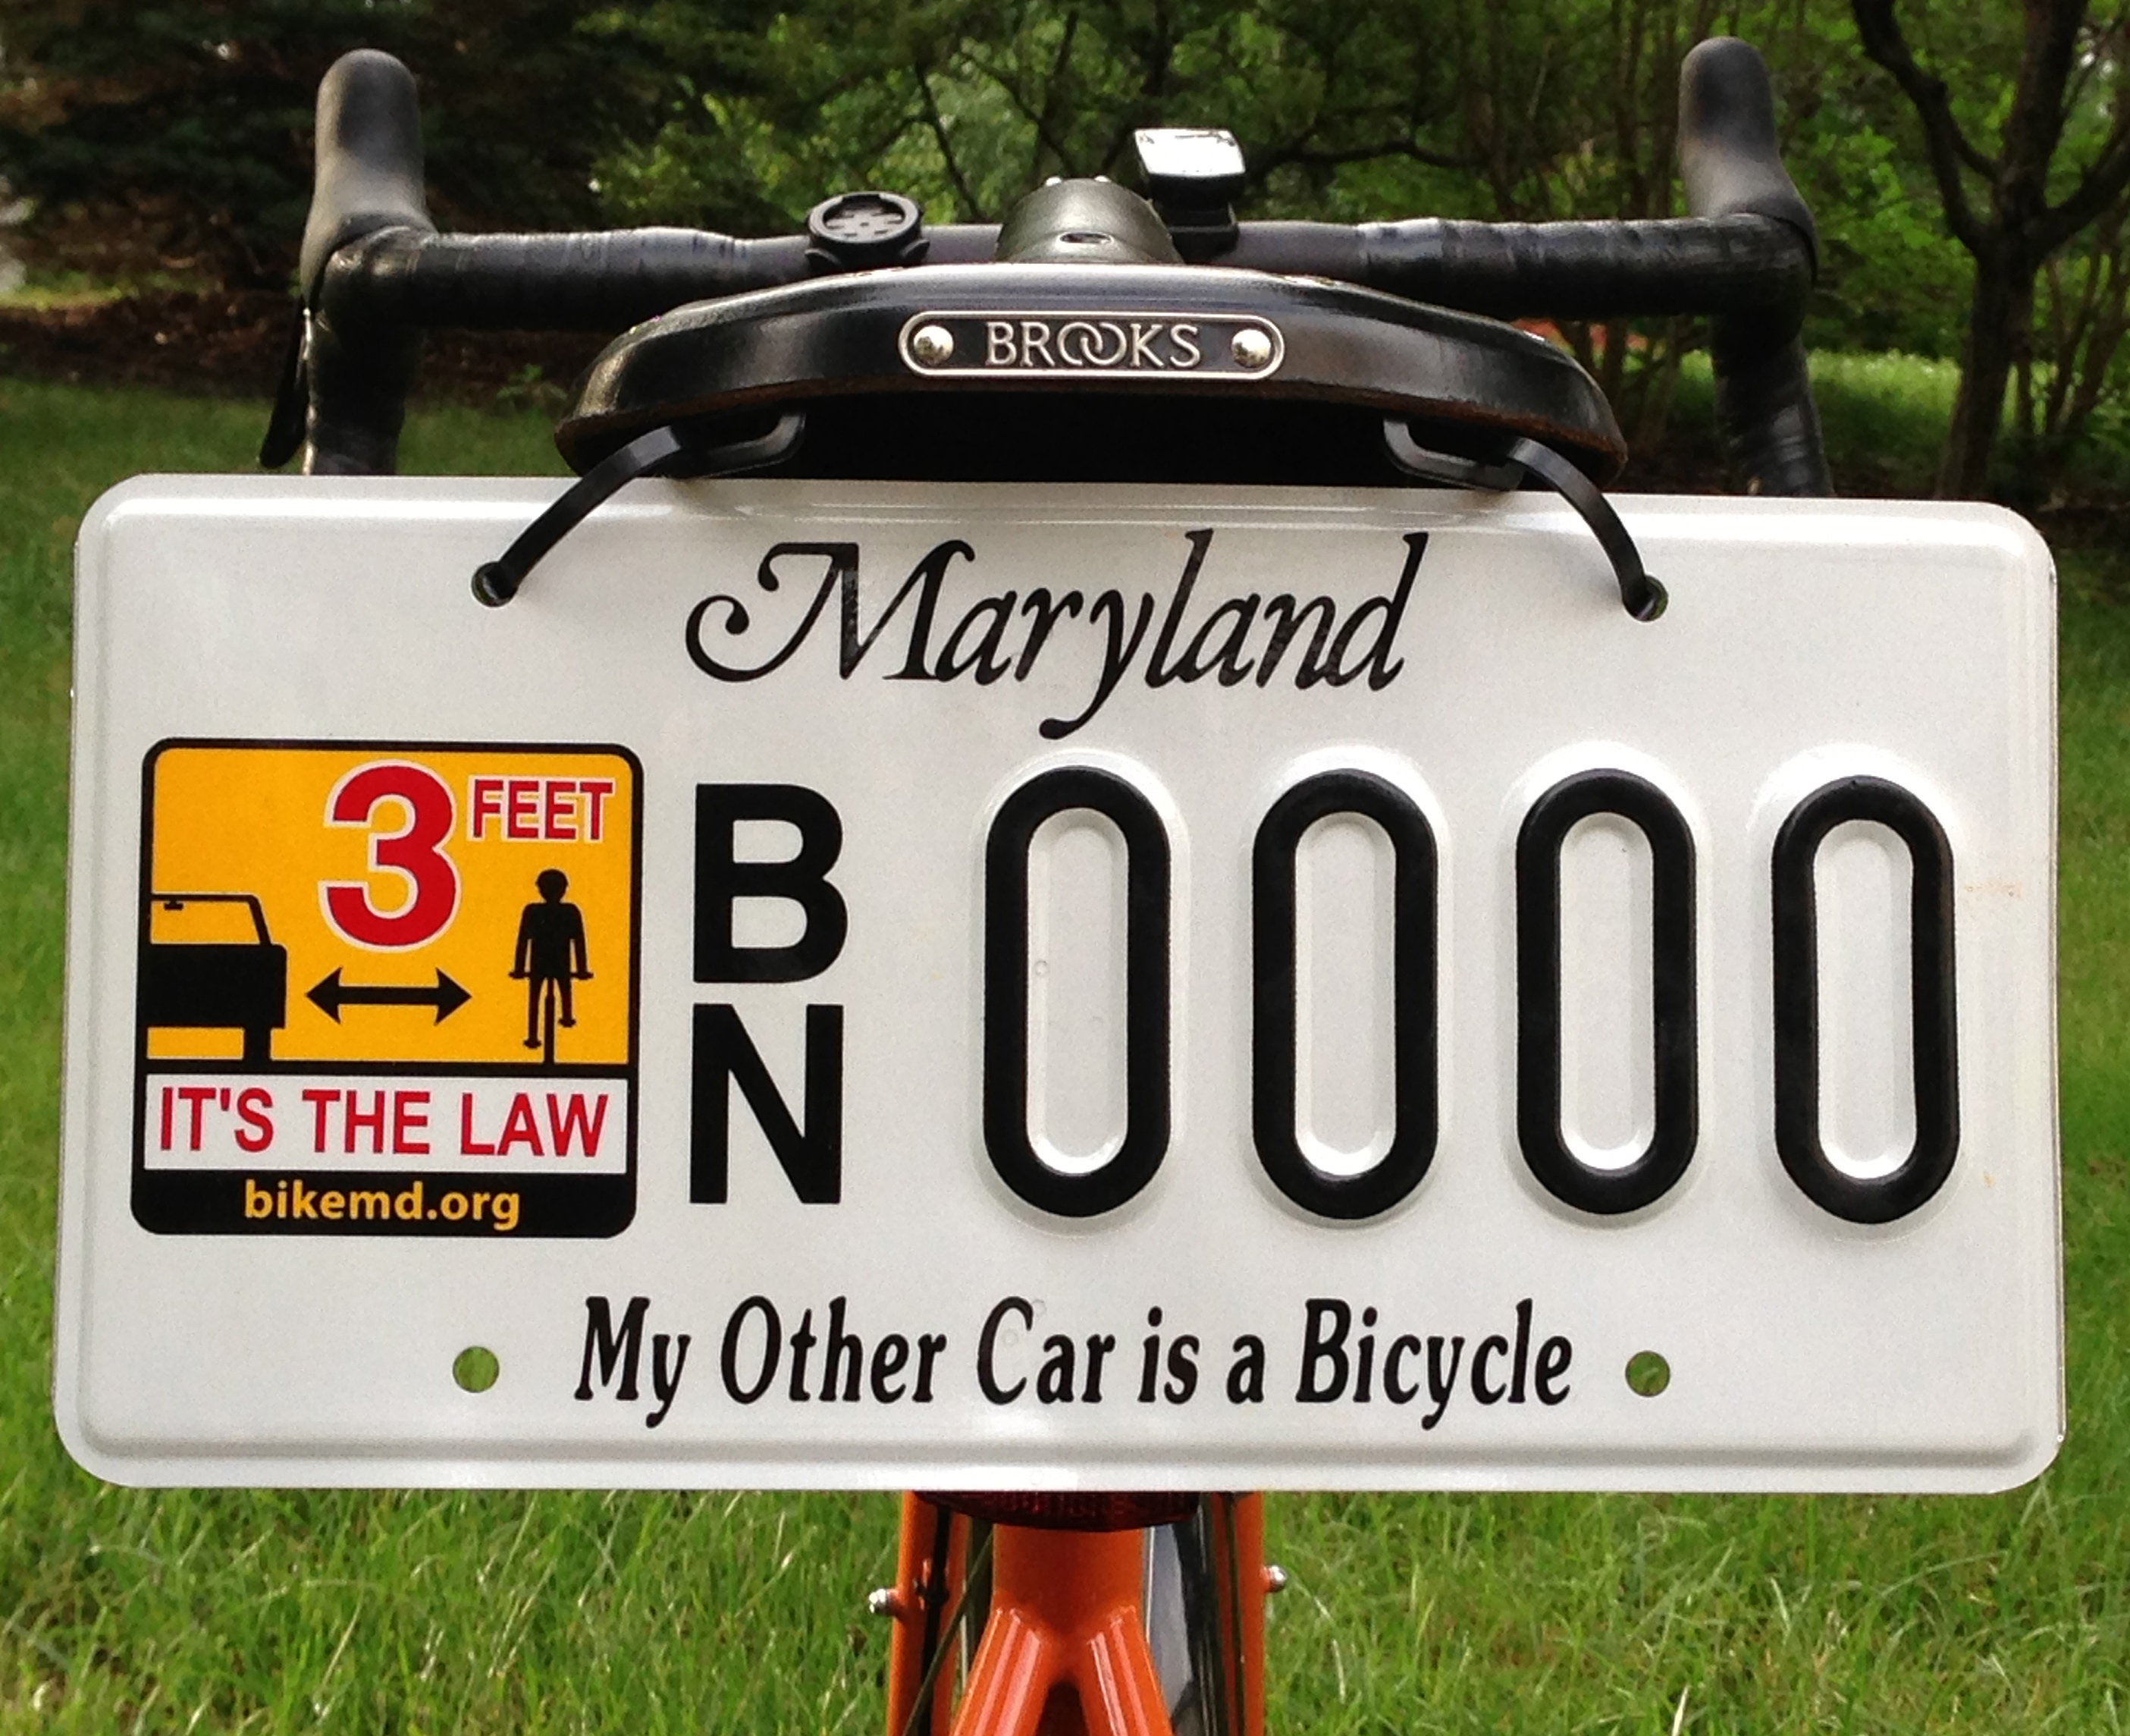 How To Get New Registration Plate For Car